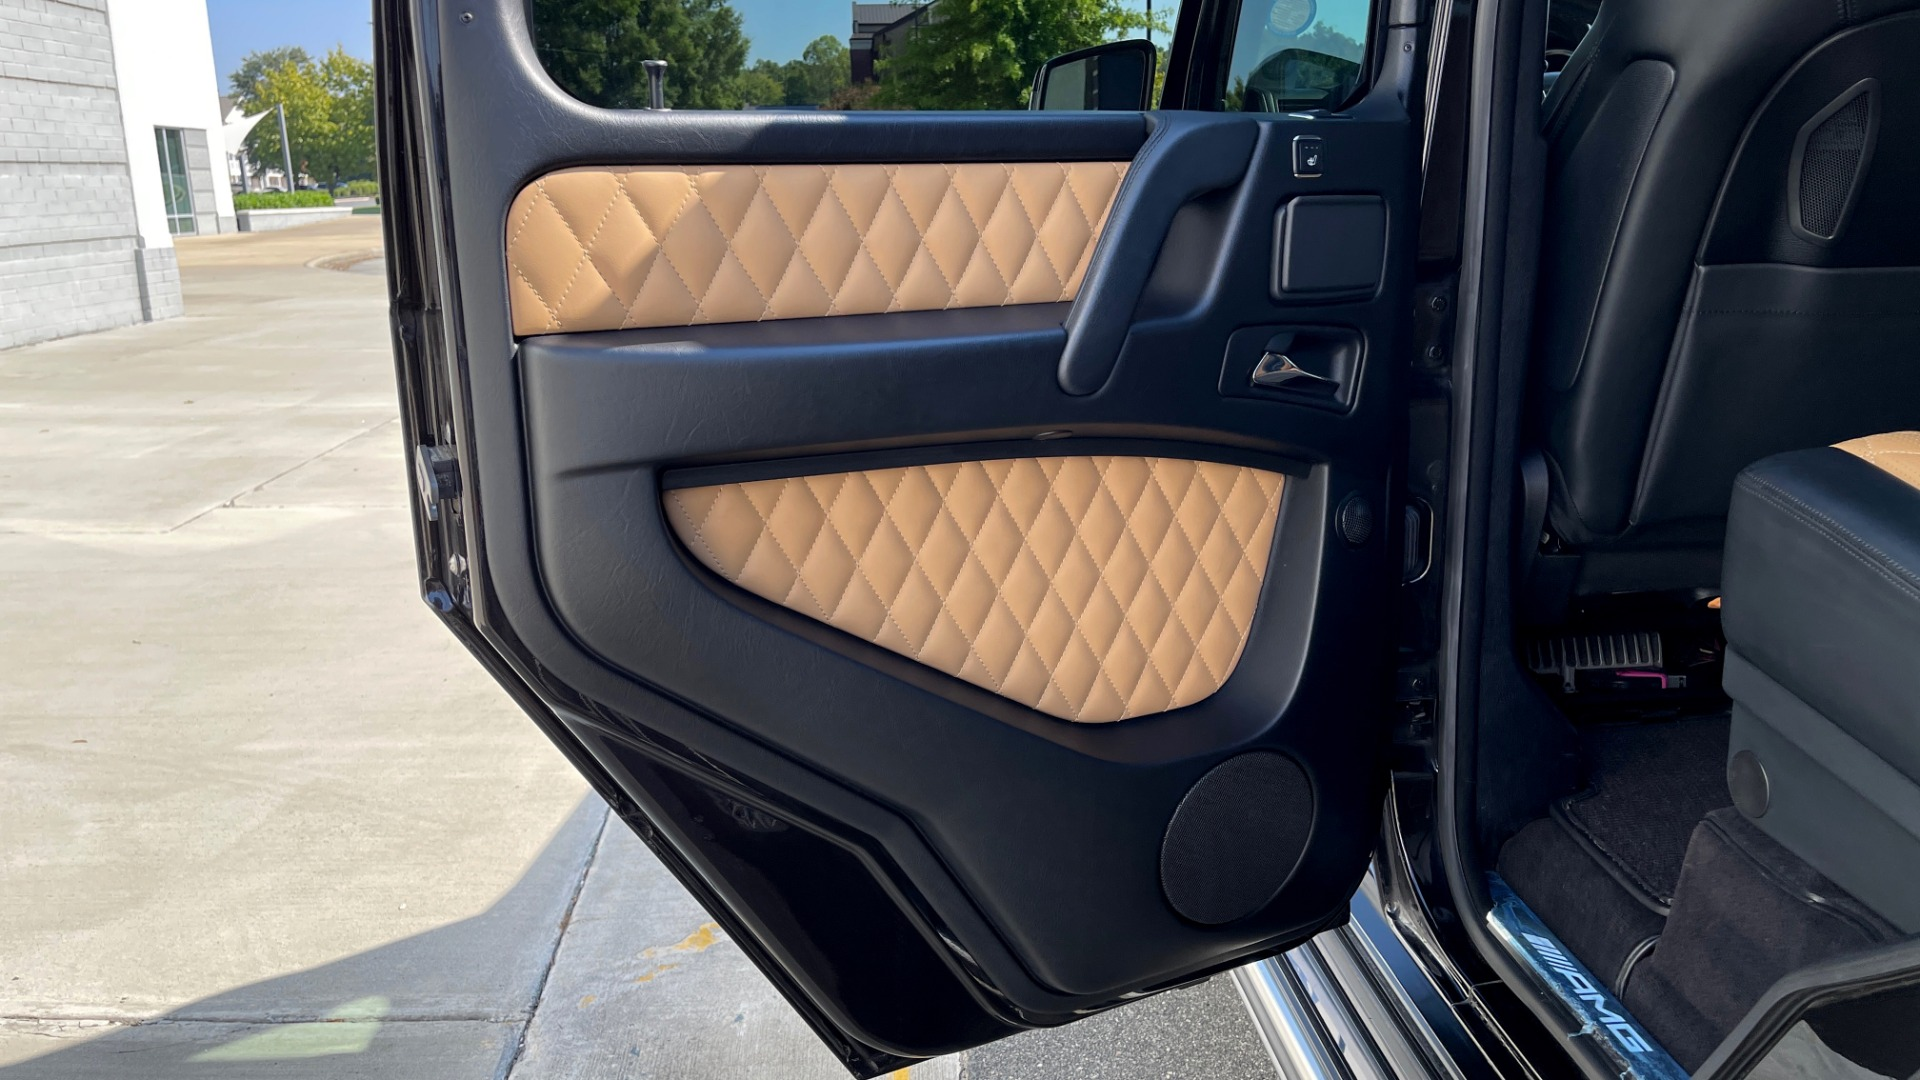 Used 2014 Mercedes-Benz G-CLASS G 63 AMG / DISGNO LEATHER / NAV / SUNROOF / REARVIEW for sale $88,999 at Formula Imports in Charlotte NC 28227 46